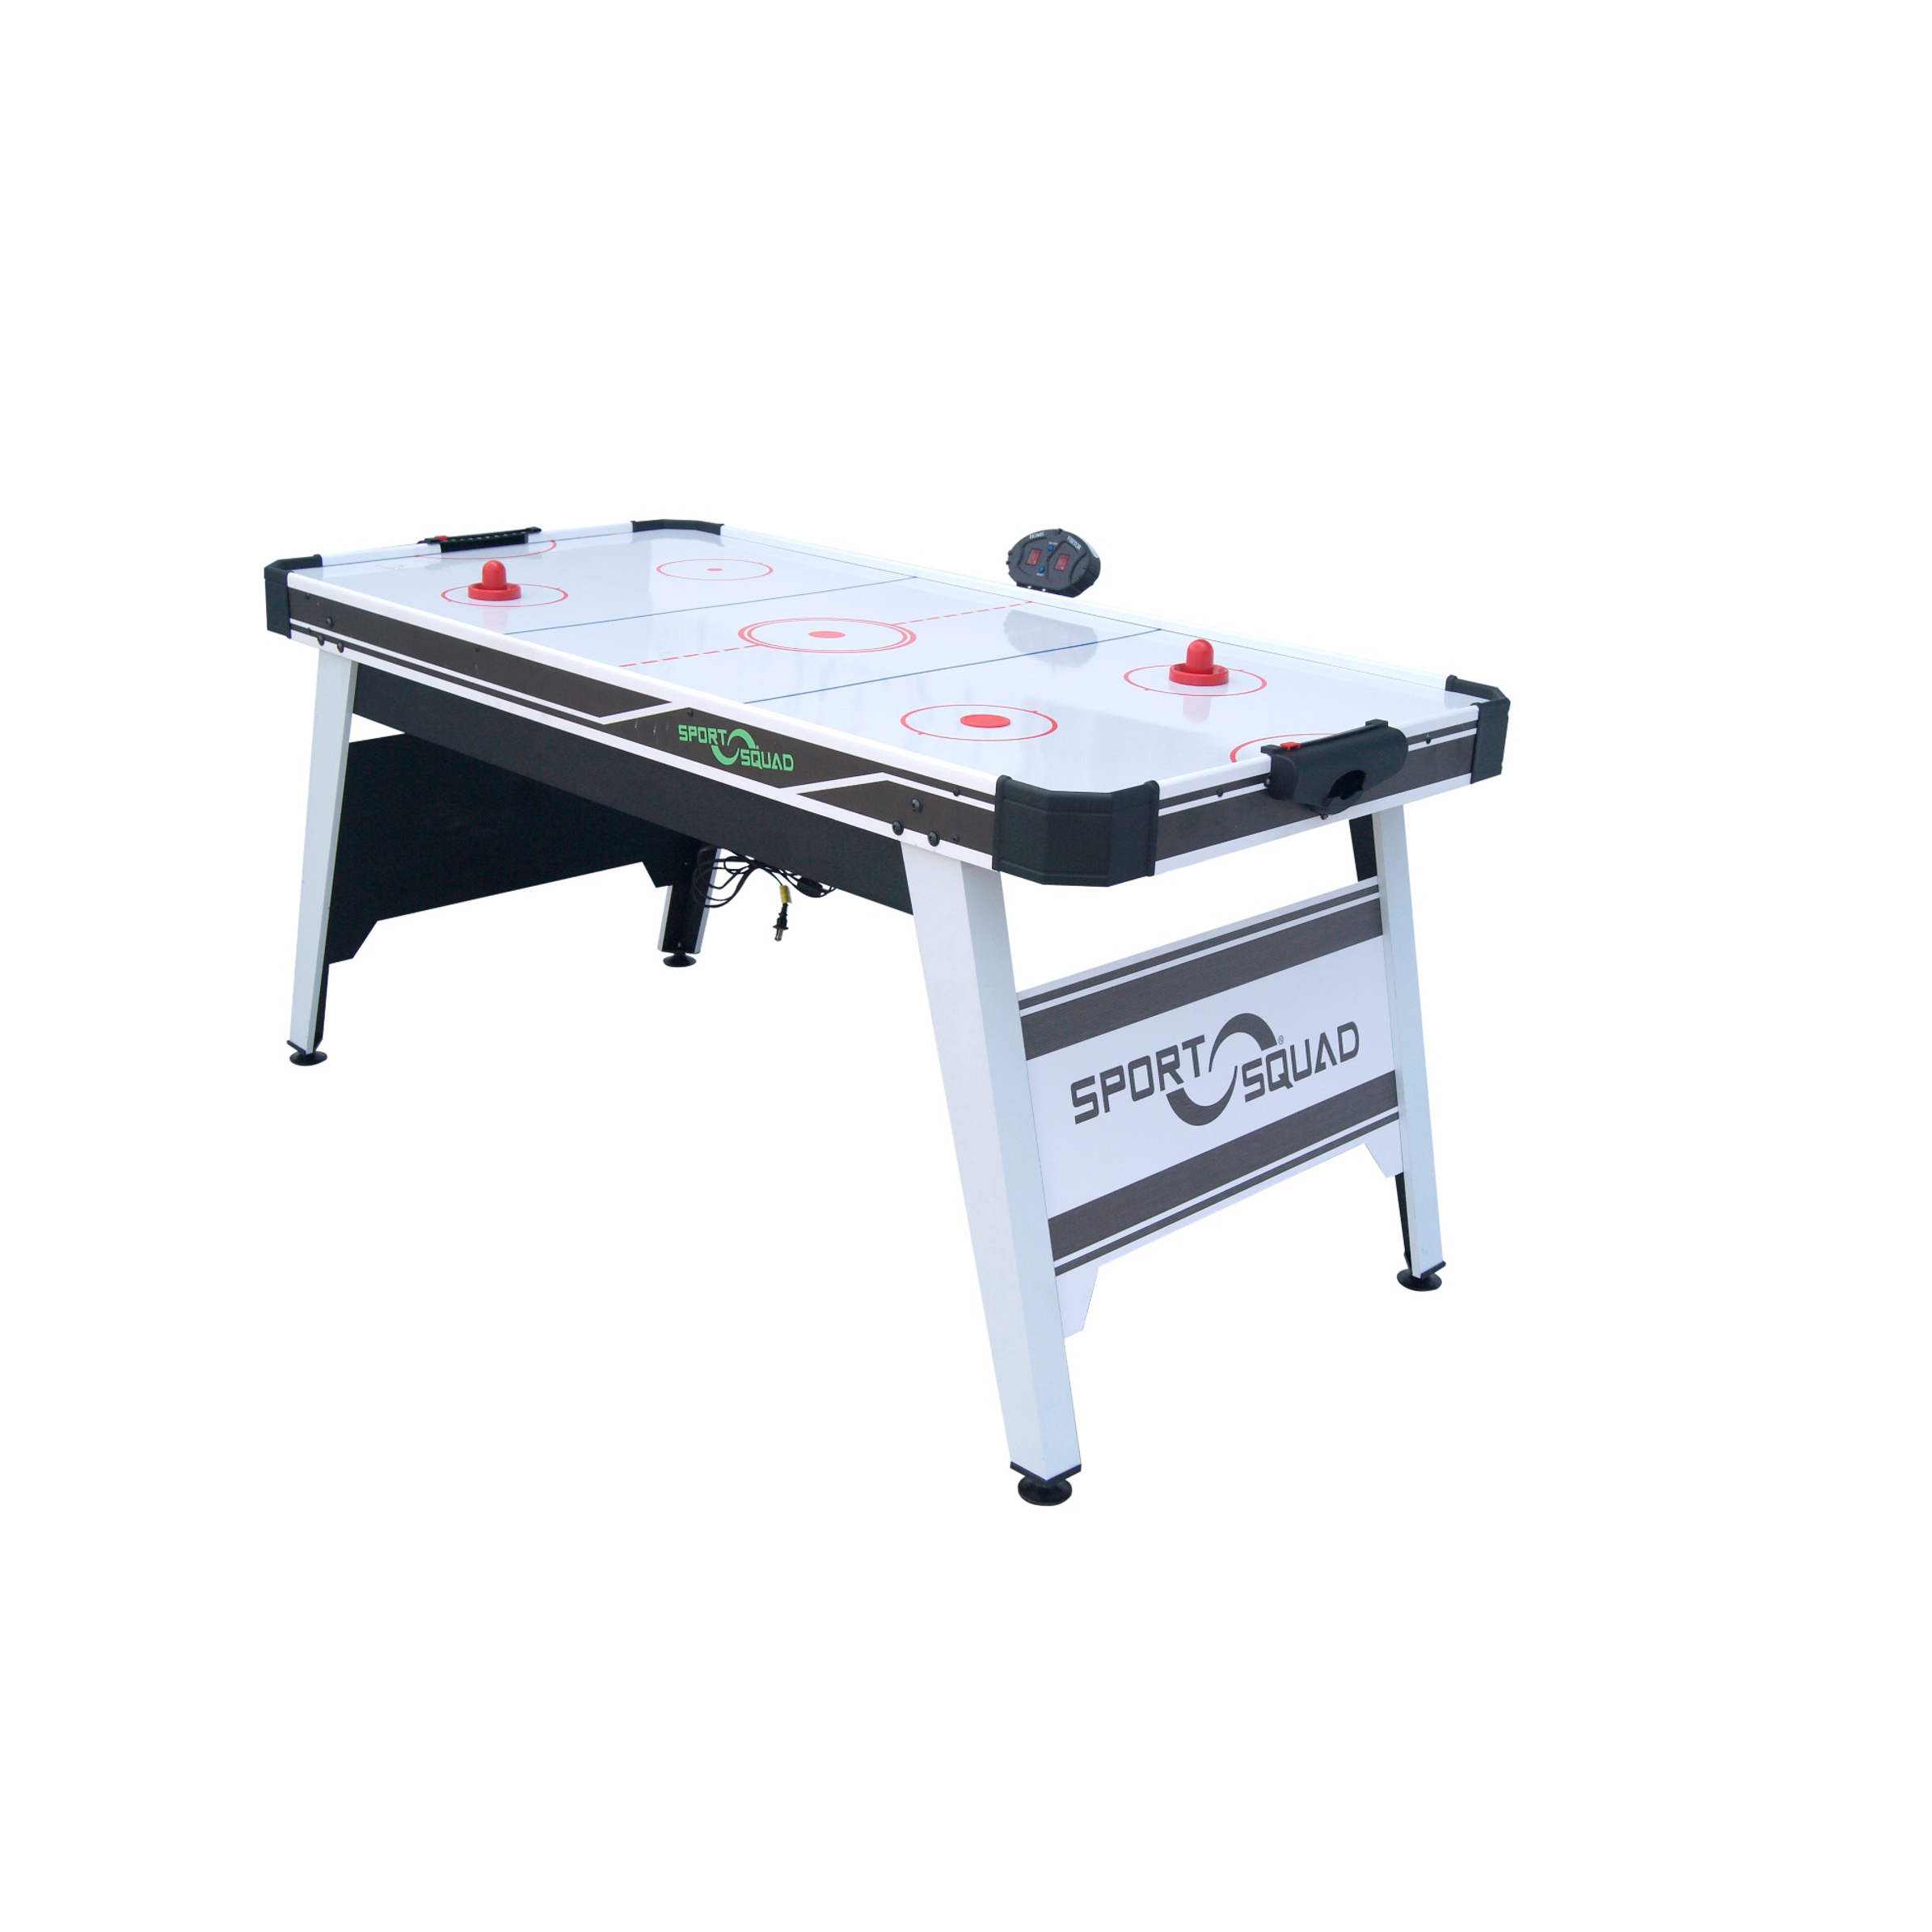 Sport-Squad-66in-Air-Powered-Hockey-BLACK-GRAY-with-Table-Tennis-Conversion-Top